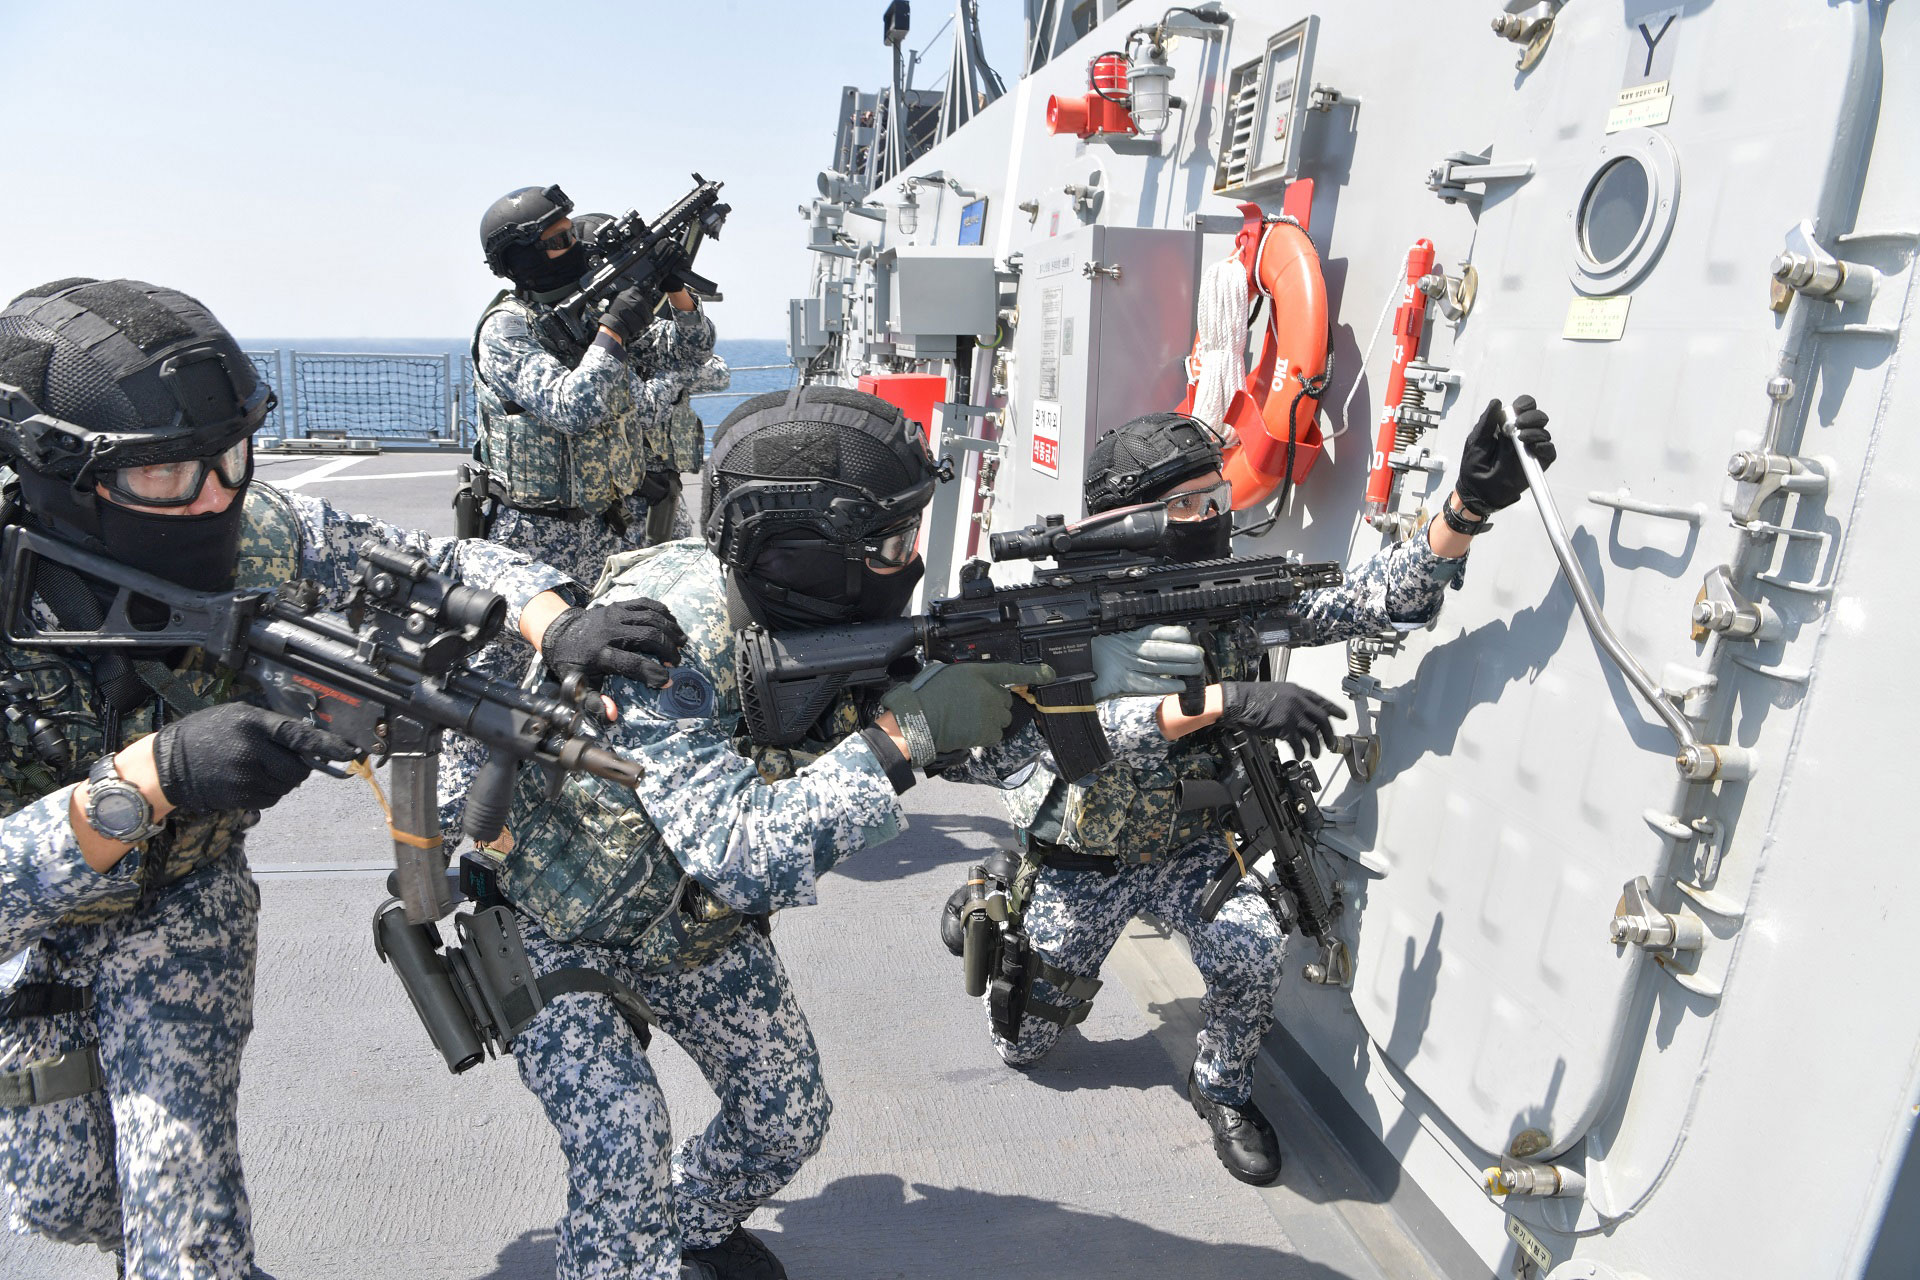 ADMM-Plus navies strengthen maritime security cooperation in multinational exercise